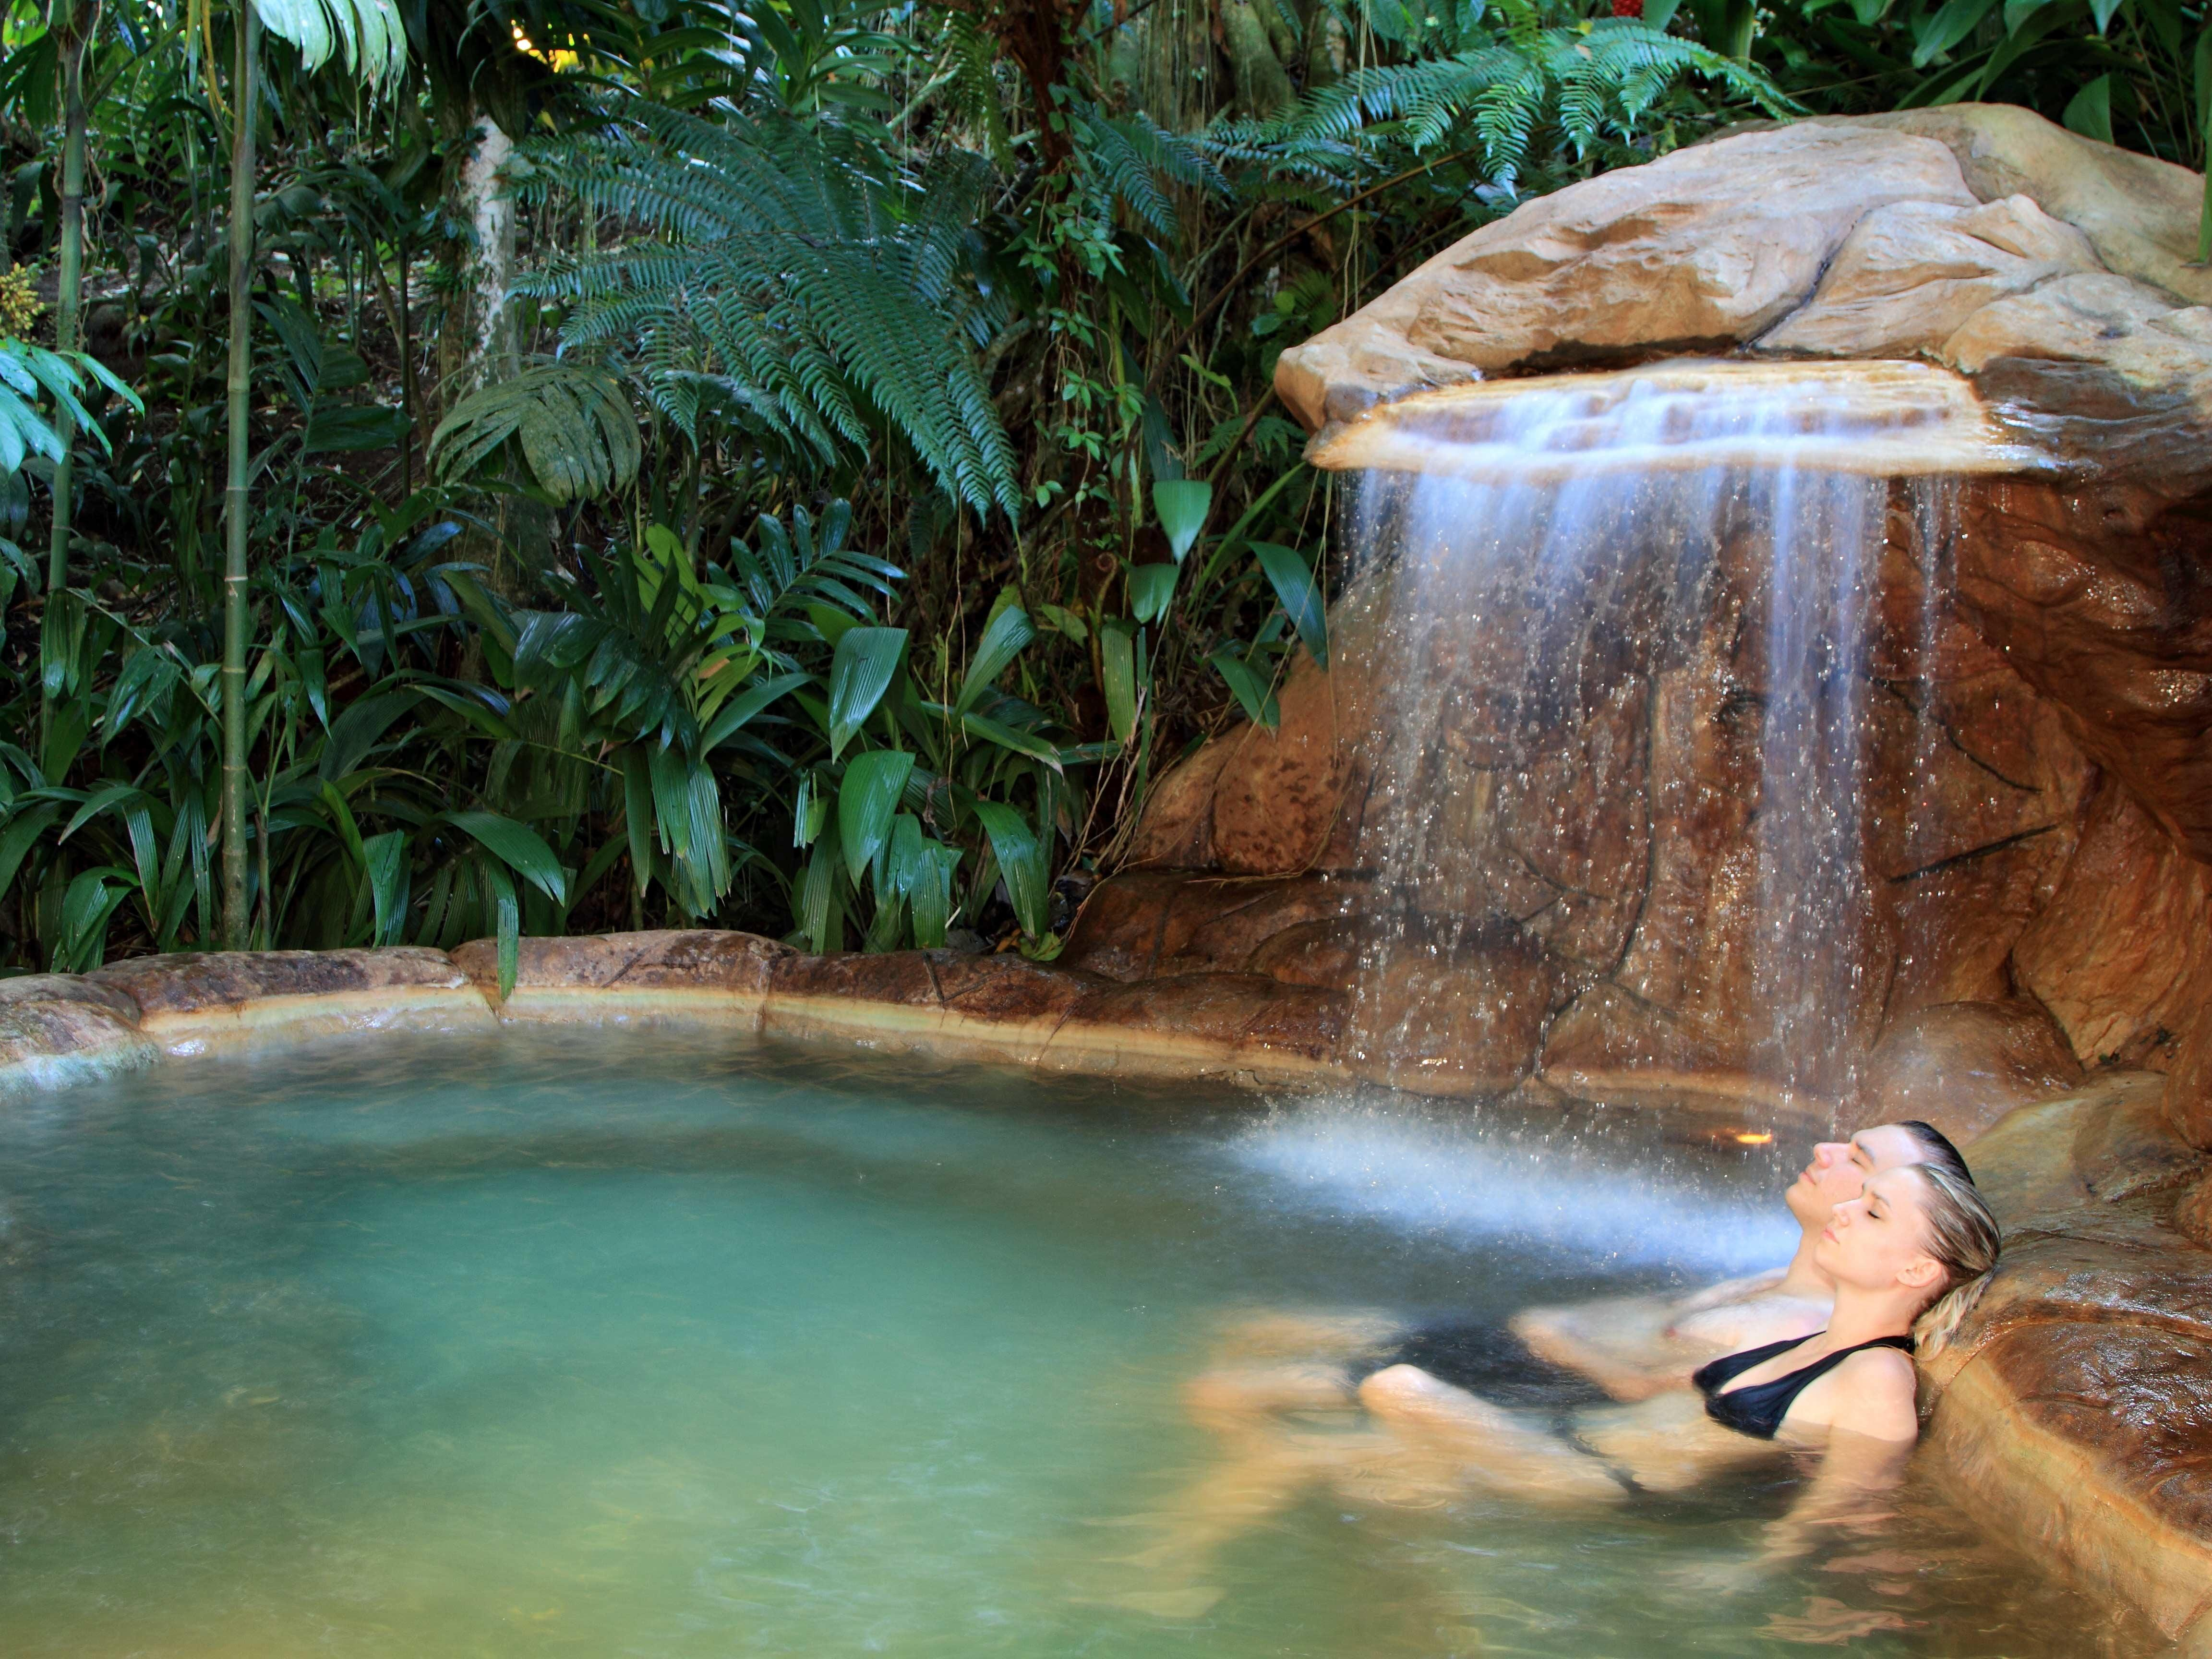 couple lounging in hot spring